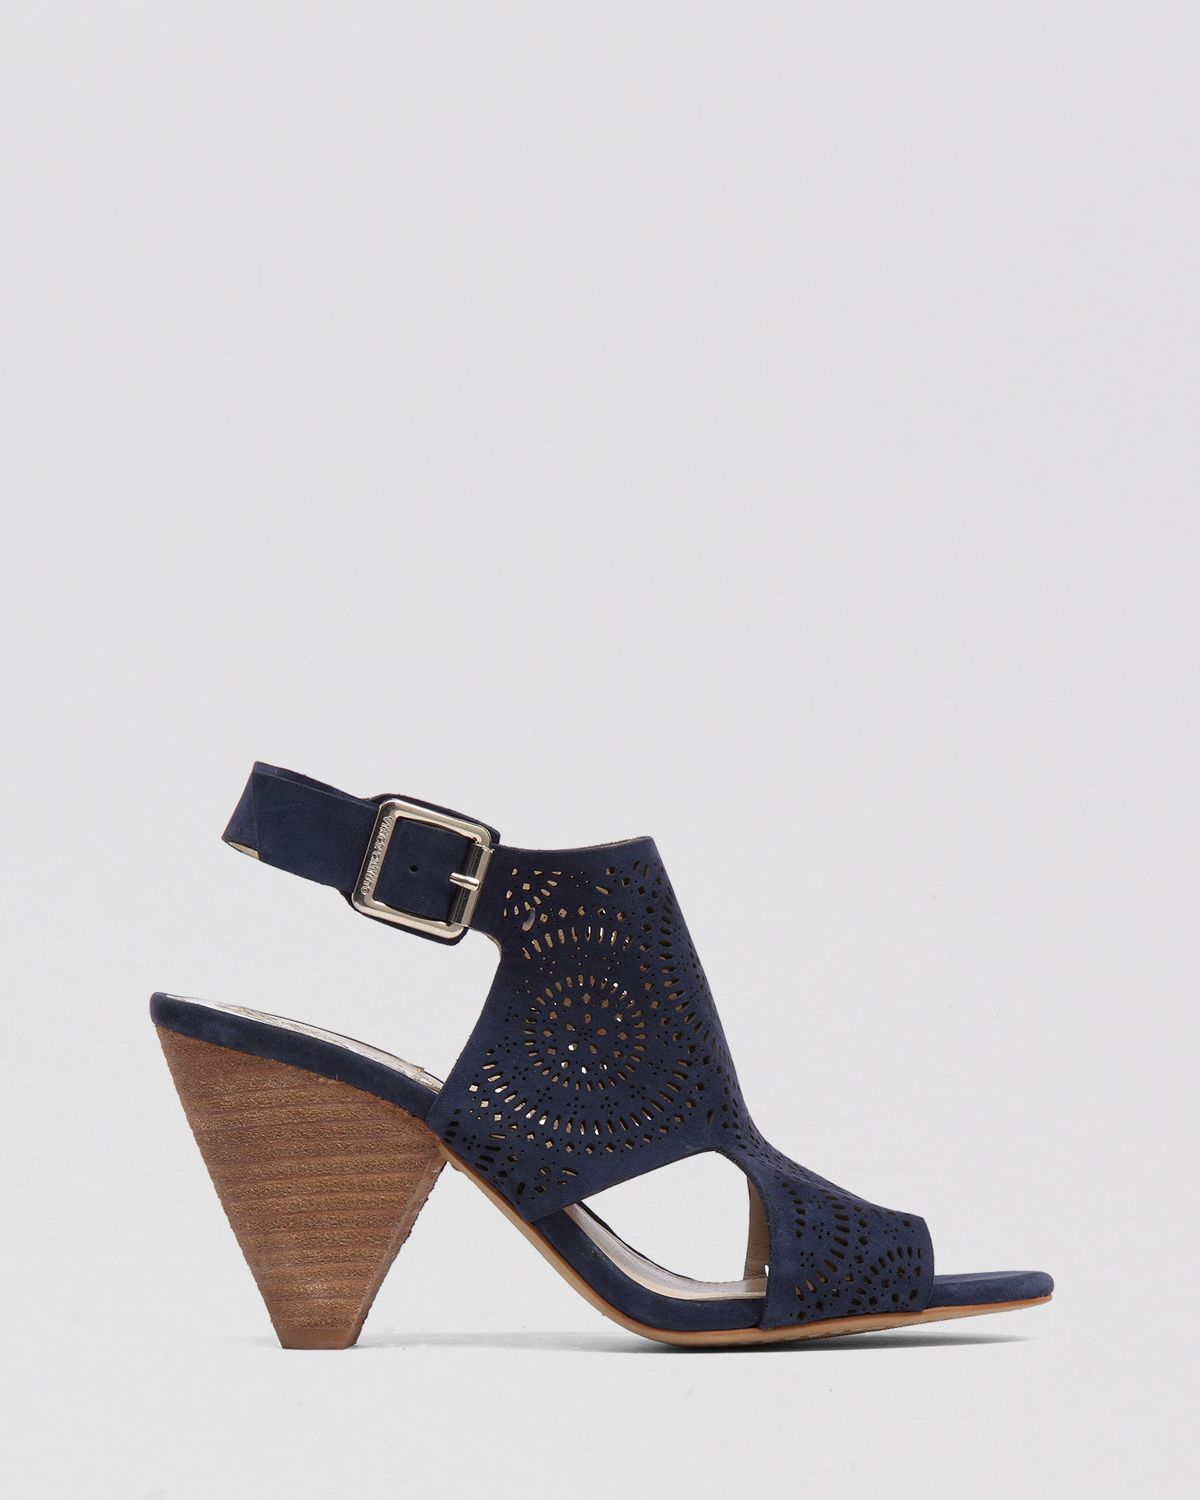 4316267a93 Vince Camuto Peep Toe Sandals Ellezi Cut-out High Heel in Blue - Lyst